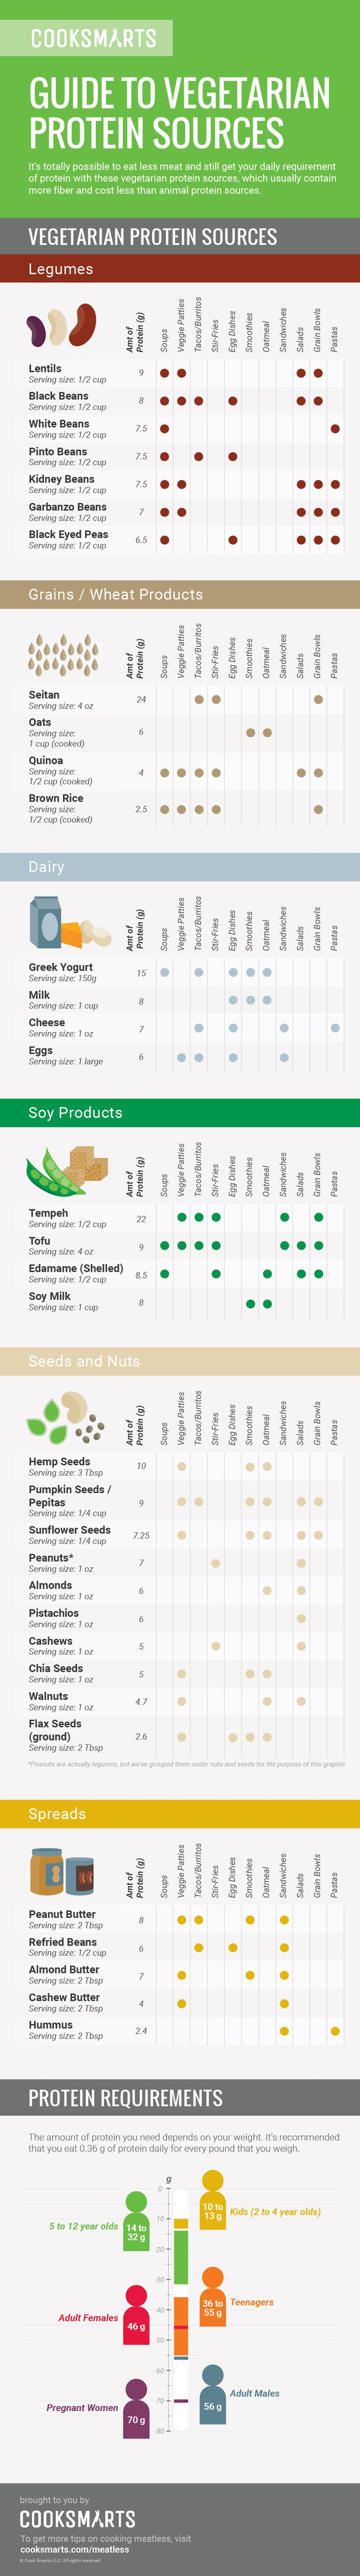 Get your daily requirement of protein with a variety of vegetarian protein sources, which usually contain more fiber and cost less than animal protein sources. #infographic #meatless #vegetarian via @cooksmarts